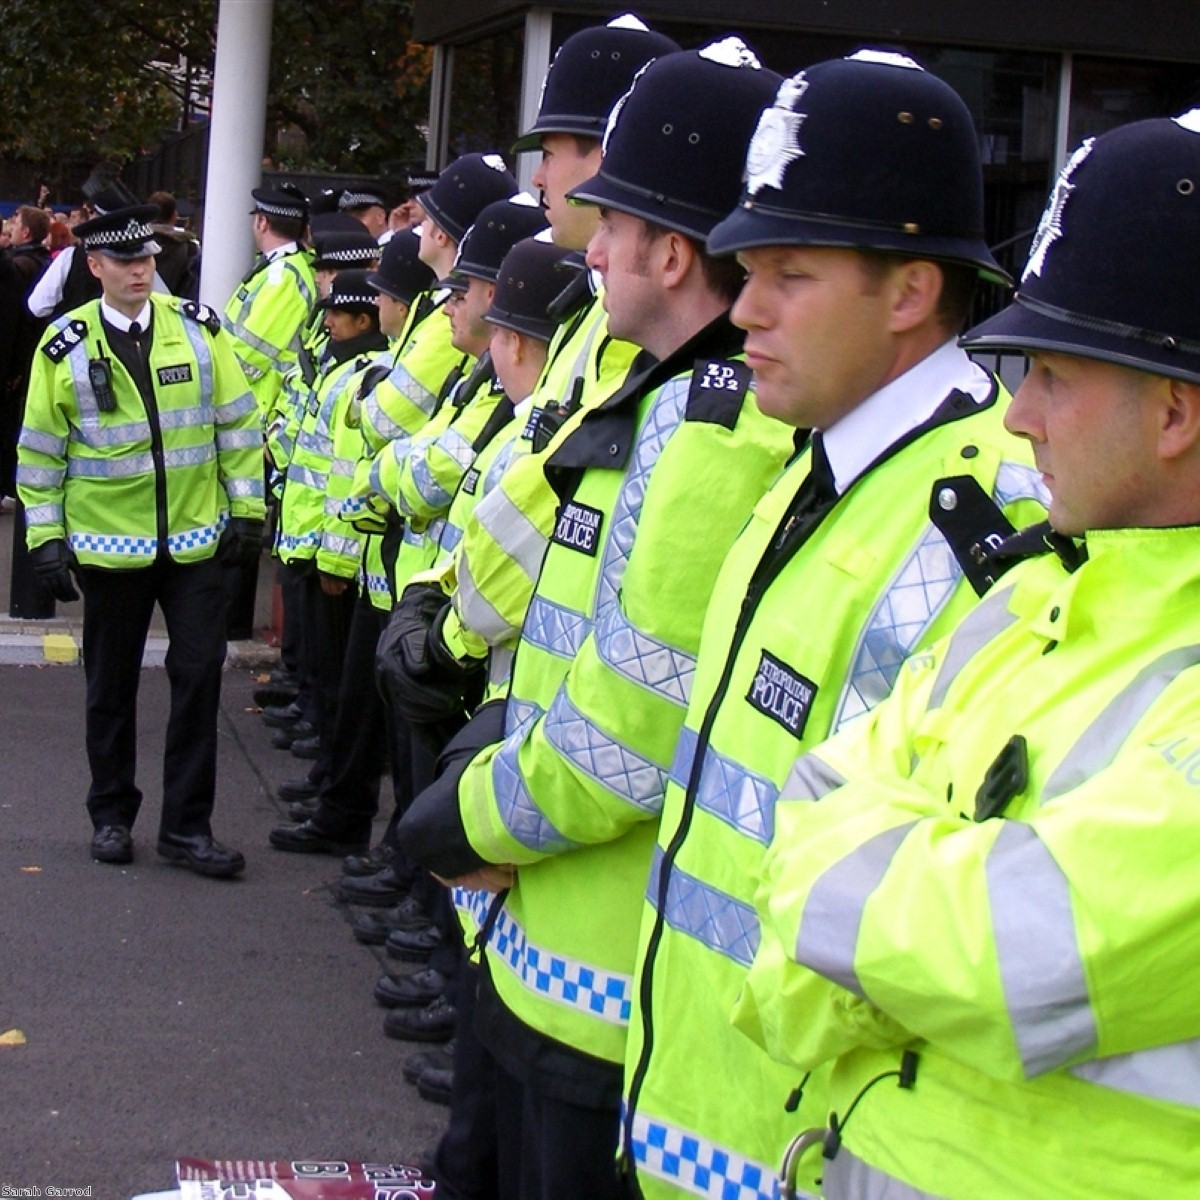 Police forces face 20% cuts over the next three years.